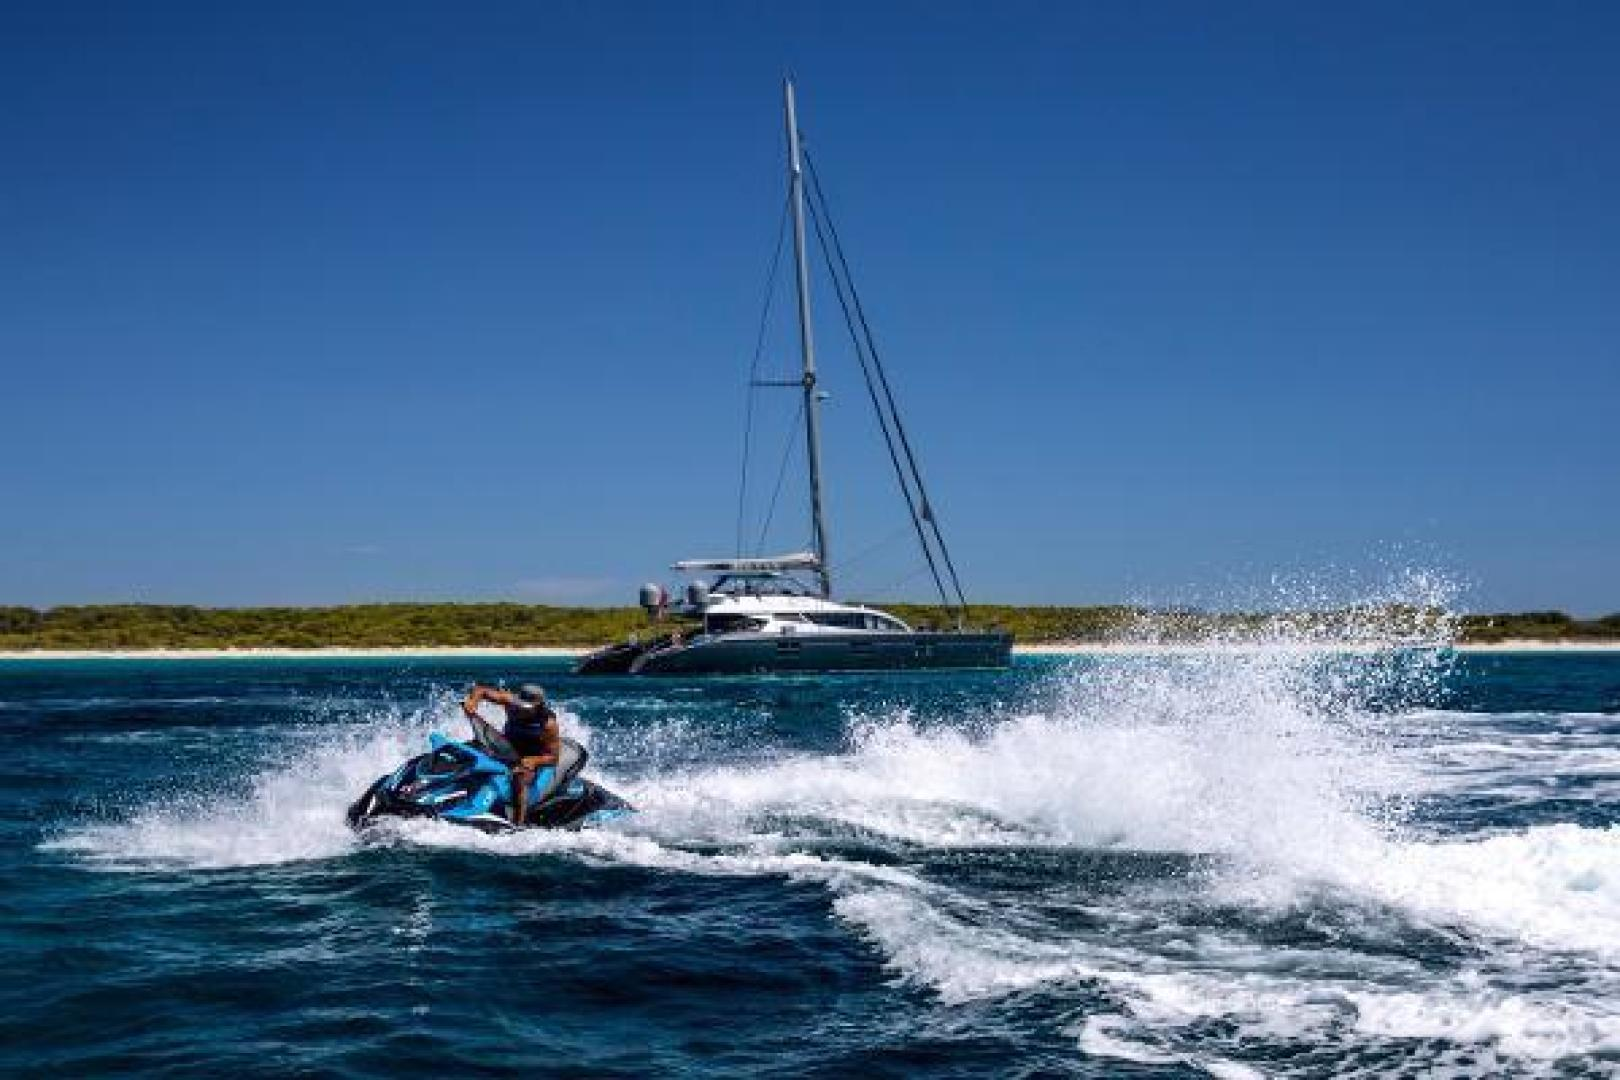 Catamaran-Blue Coast Yachts  2011-CARTOUCHE Antigua & Barbuda-1296559 | Thumbnail